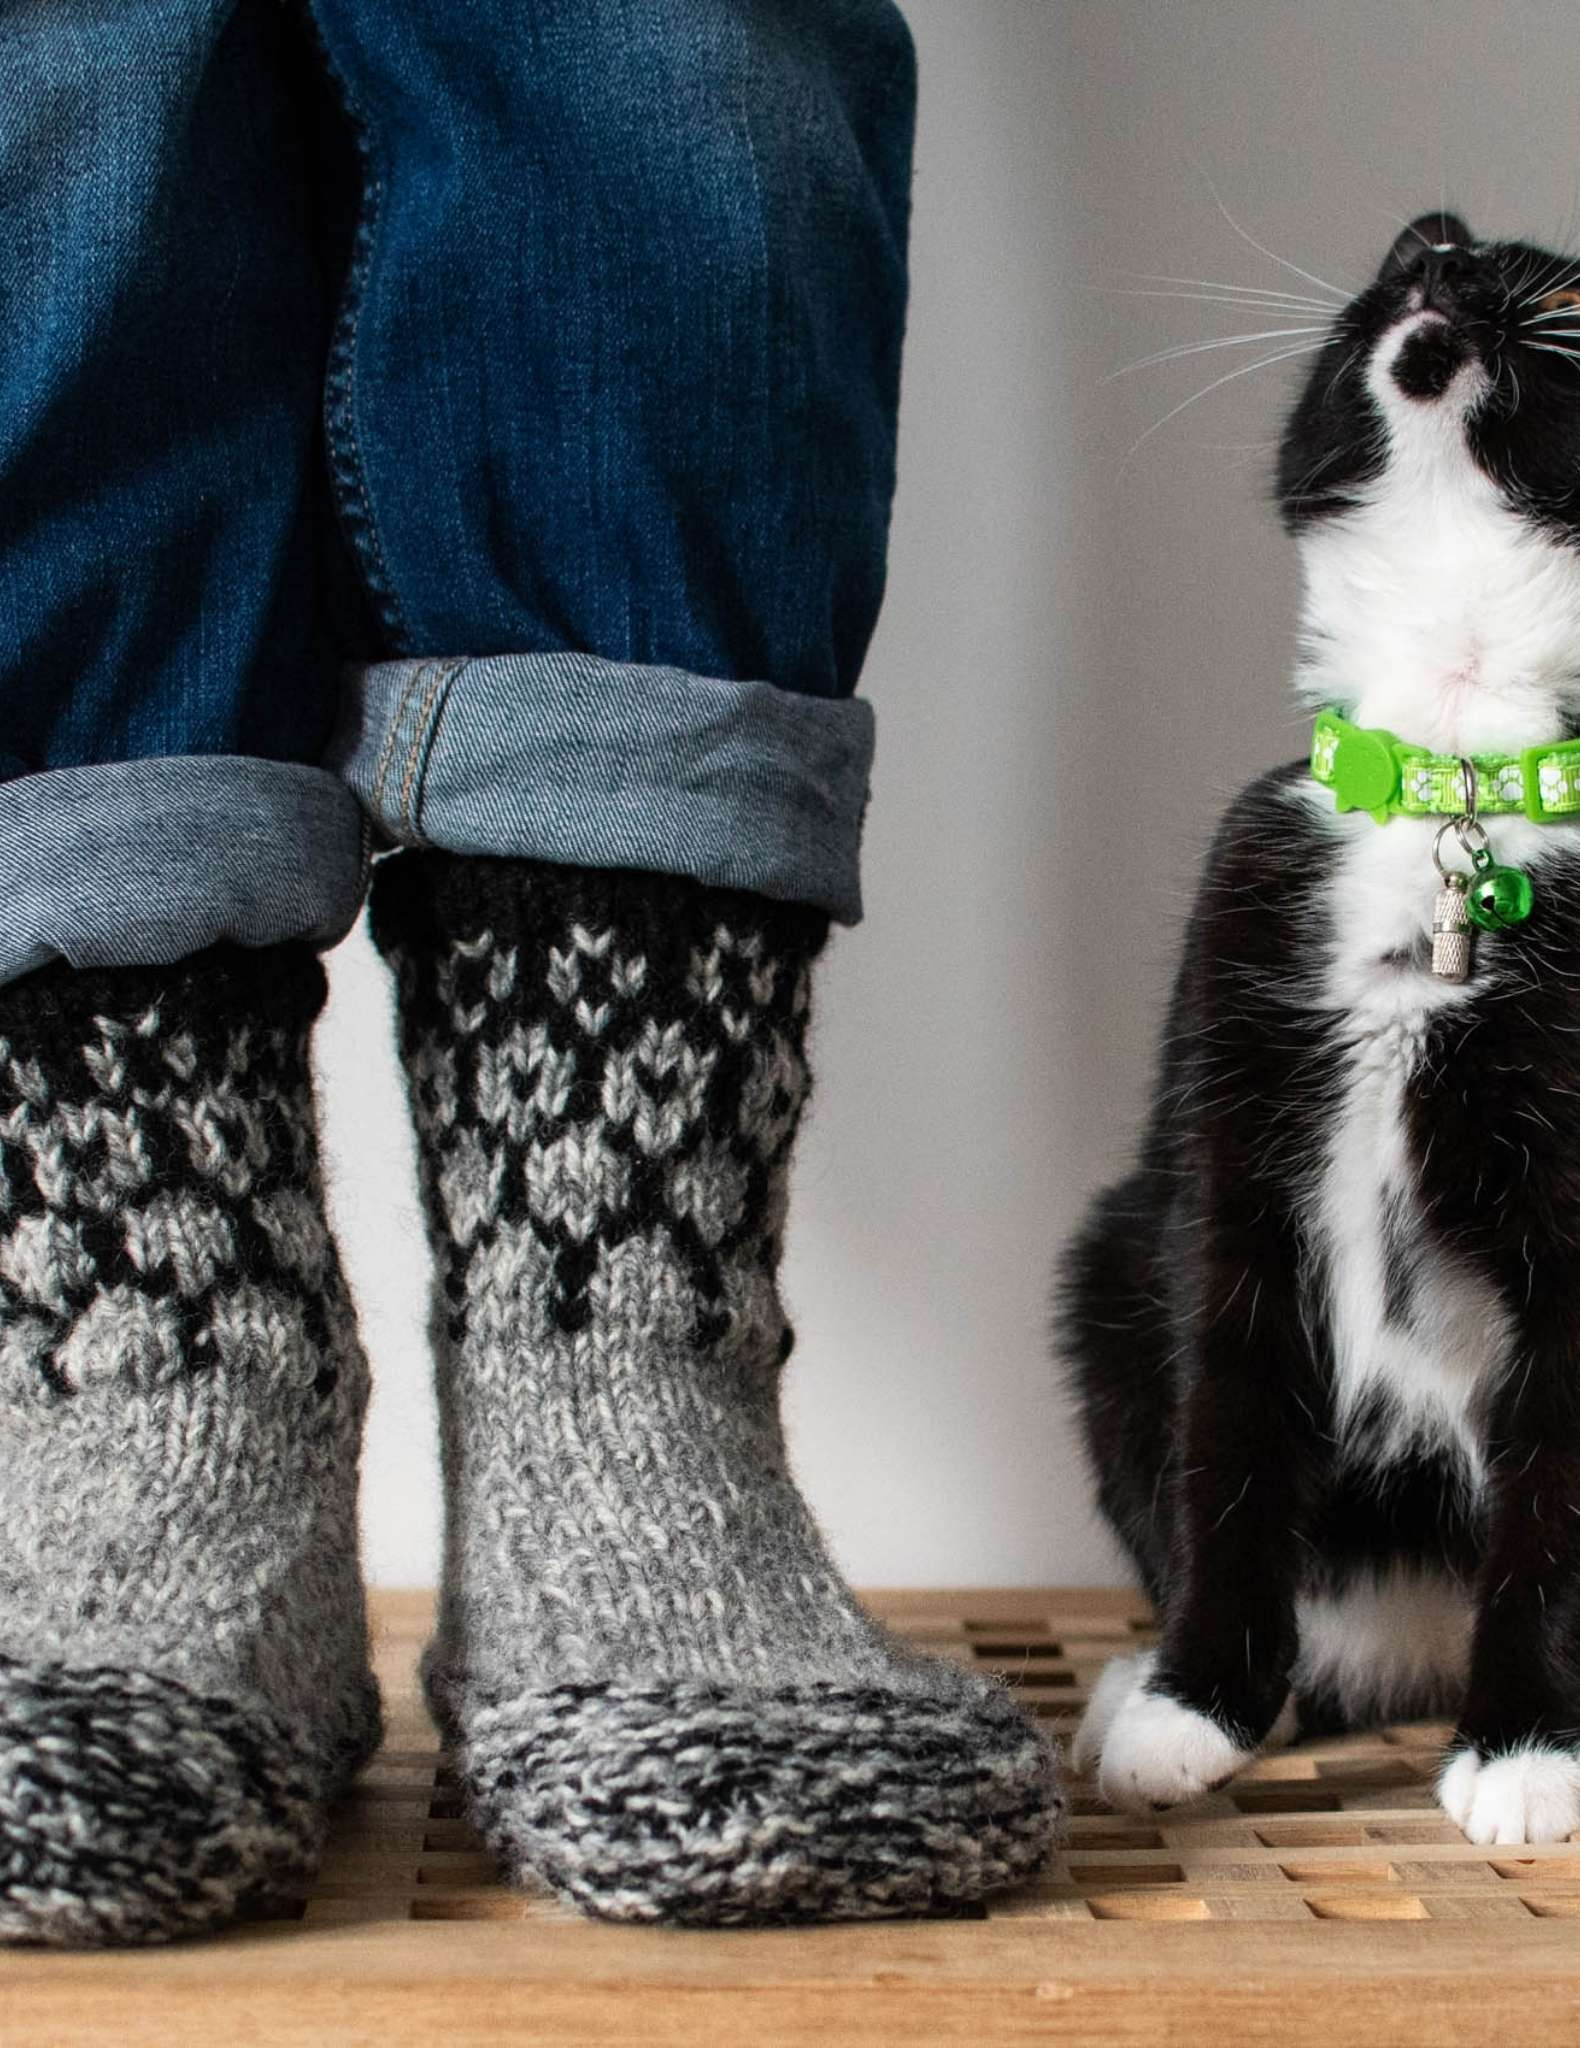 a model wears a pair of knitted slippers with colourwork detail on the cuff, they standing on a table with just their feet and cuffs of rolled up jeans showing. Next to them sits a black and white cat with green colour that looks up at the wearer.